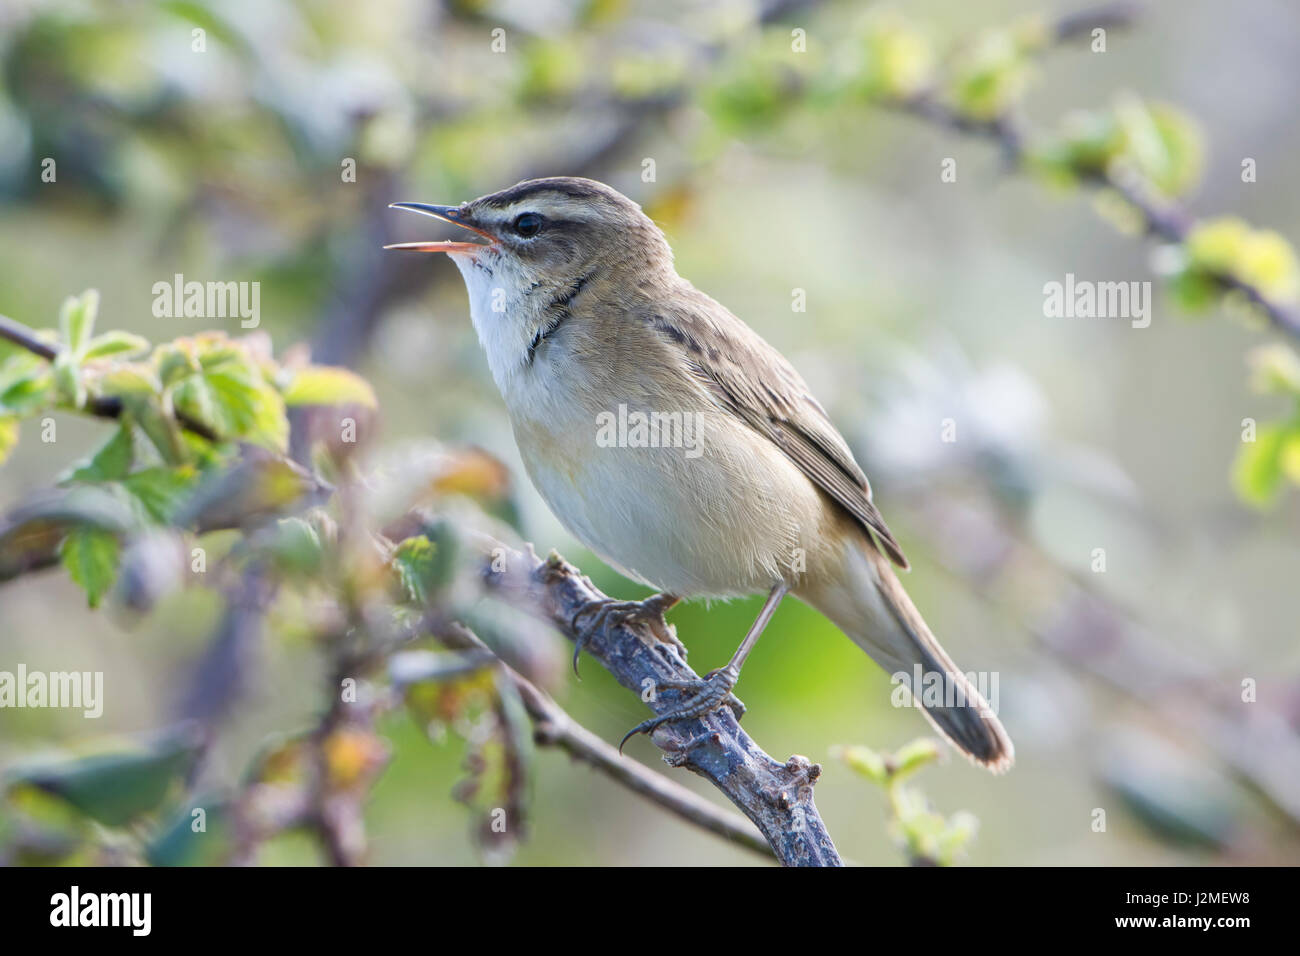 A Sedge Warbler (Acrocephalus schoenobaenus) singing from scrub to attract a mate in spring, Rye harbour nature - Stock Image